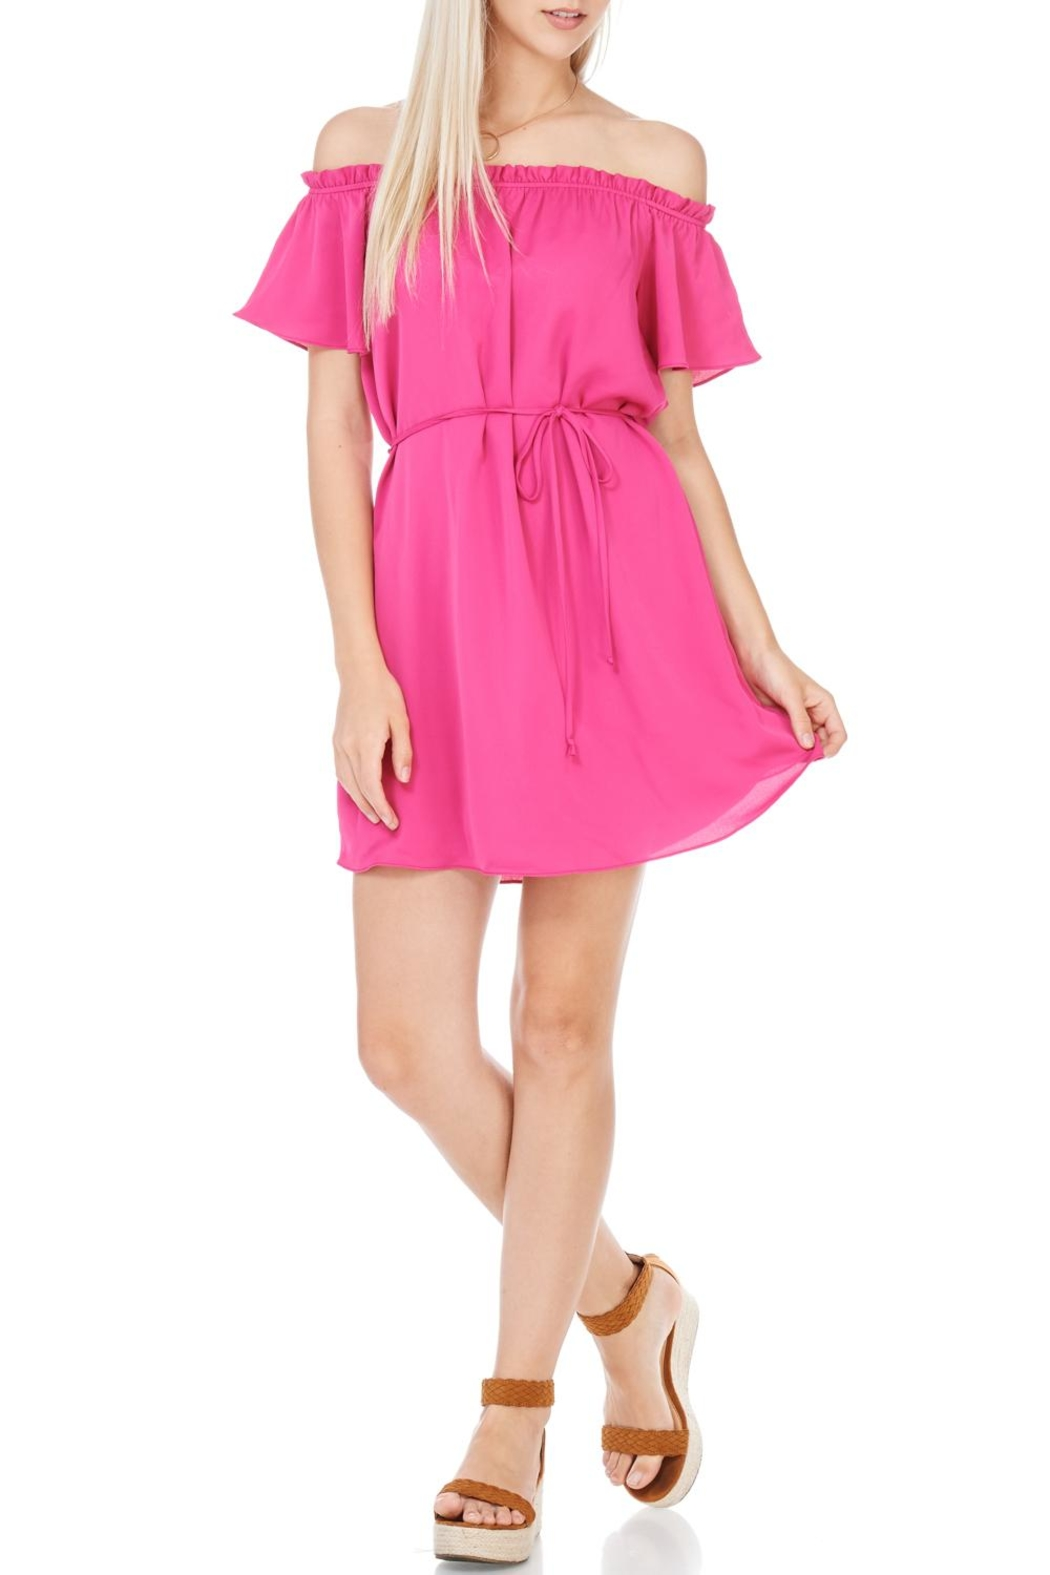 Everly Fuchsia Dress - Main Image